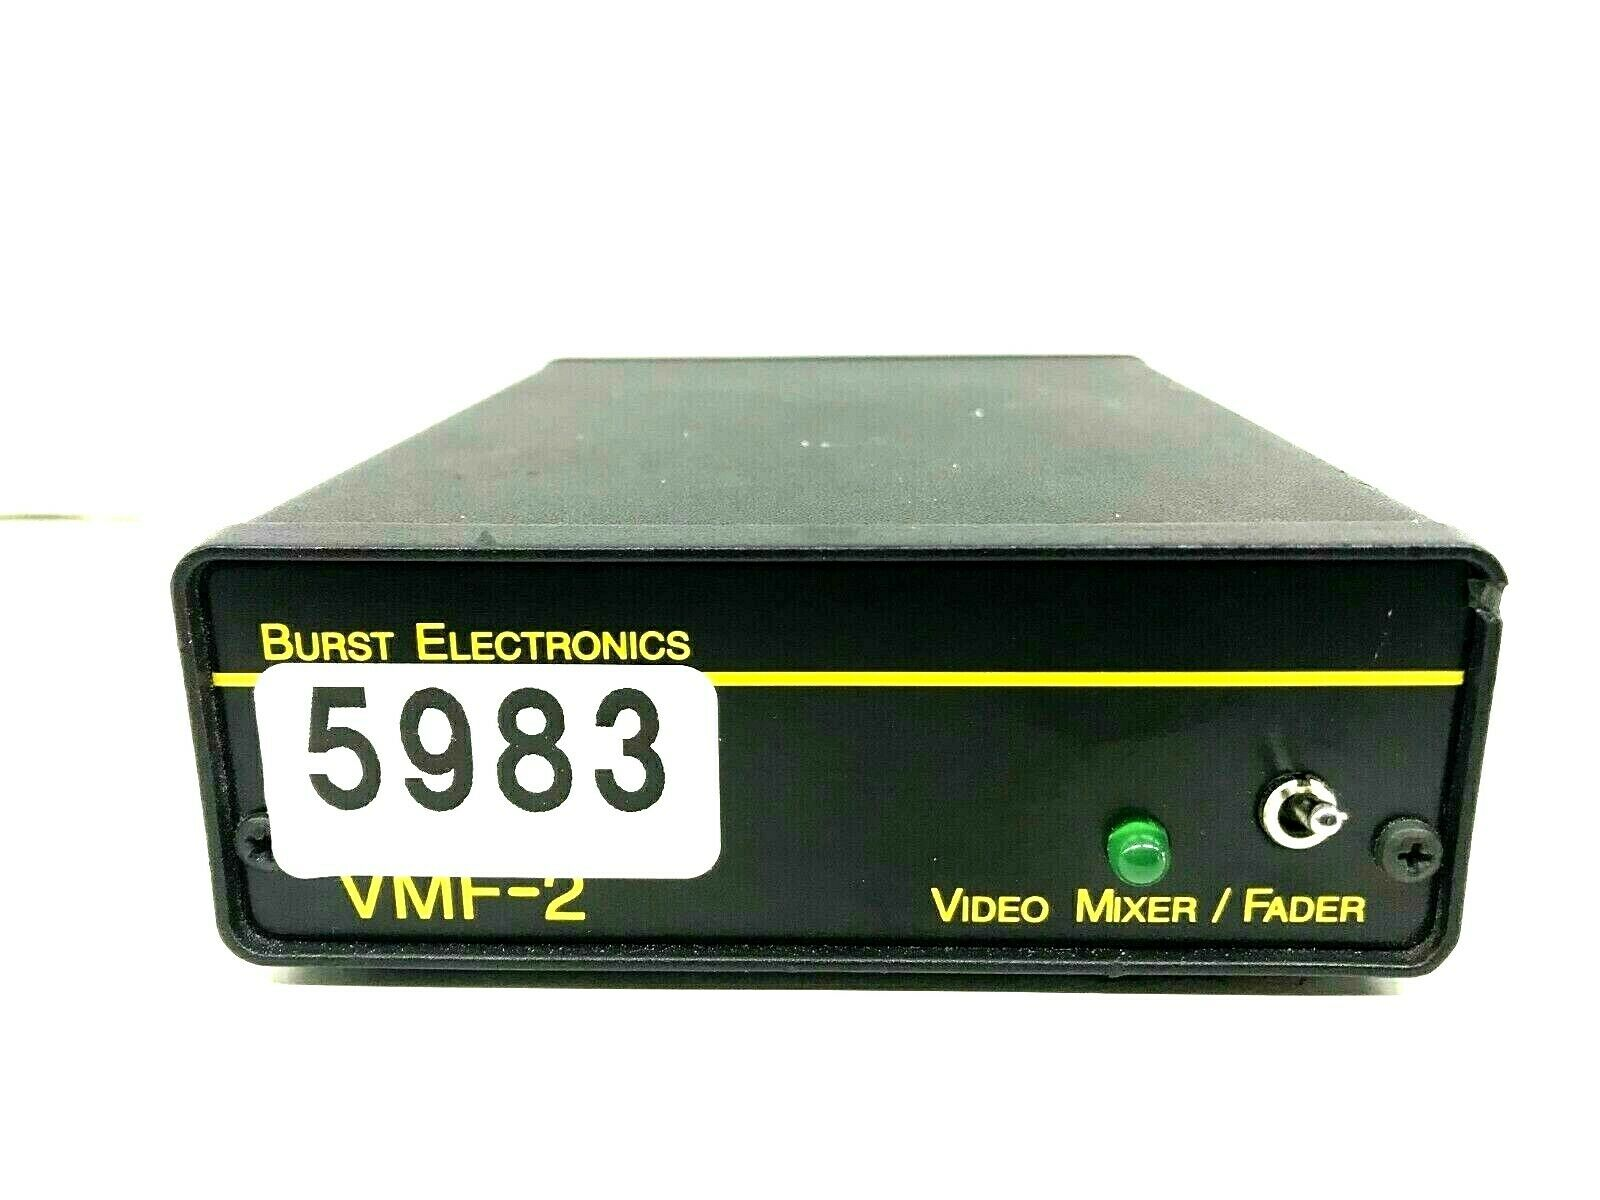 BURST ELECTRONICS VMF-2 VIDEO MIXER FADER  5983 (ONE)